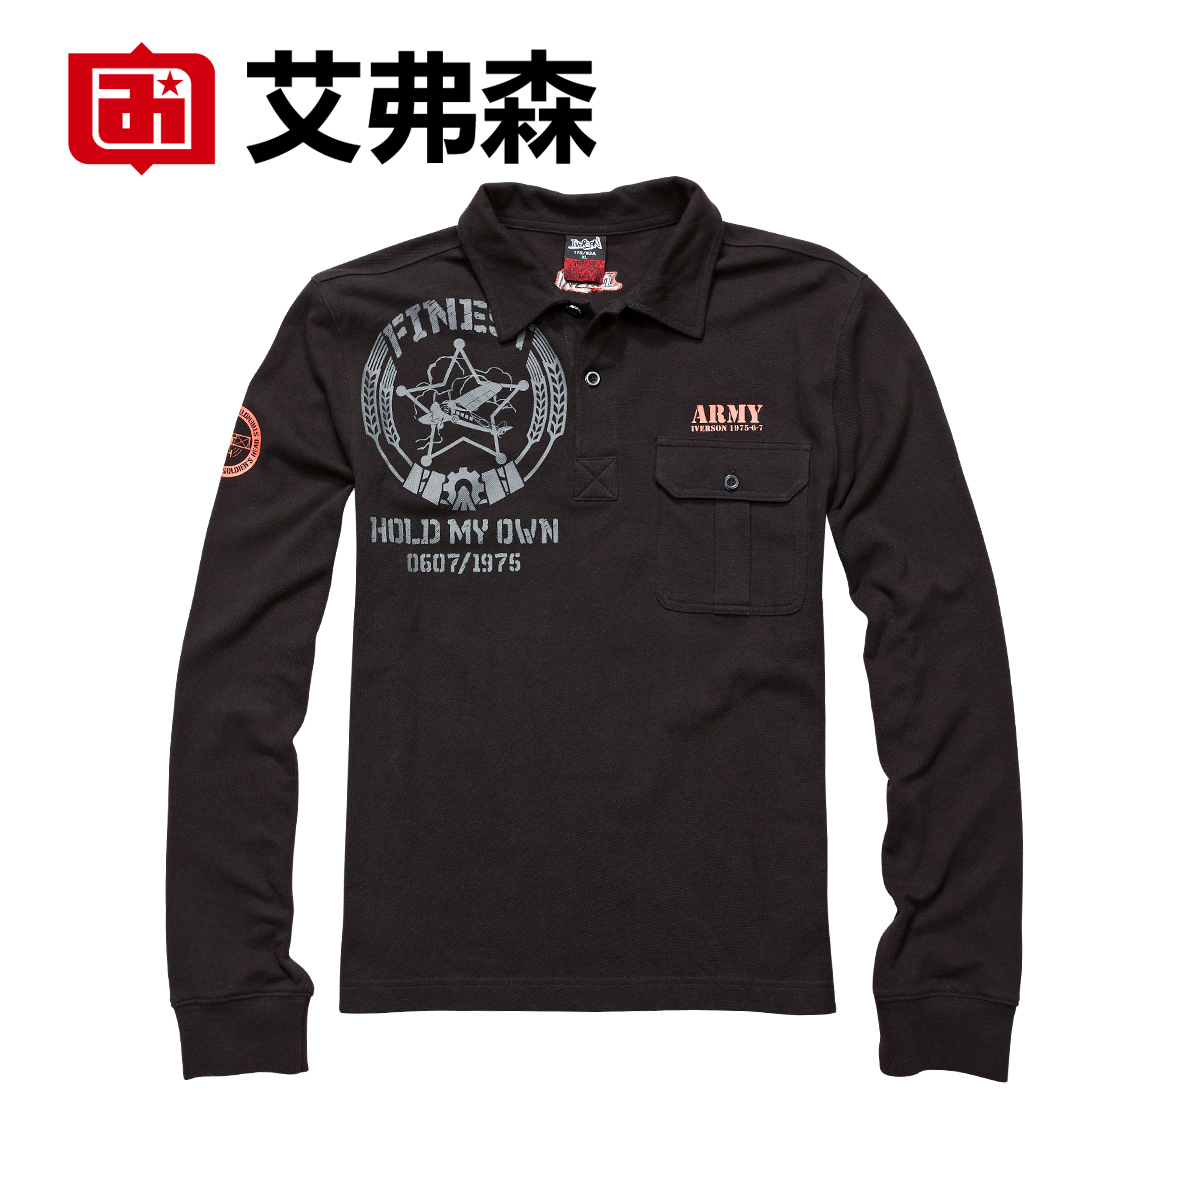 D.c spring new arrival male long-sleeve T-shirt 100% men's cotton clothing basic shirt casual(China (Mainland))